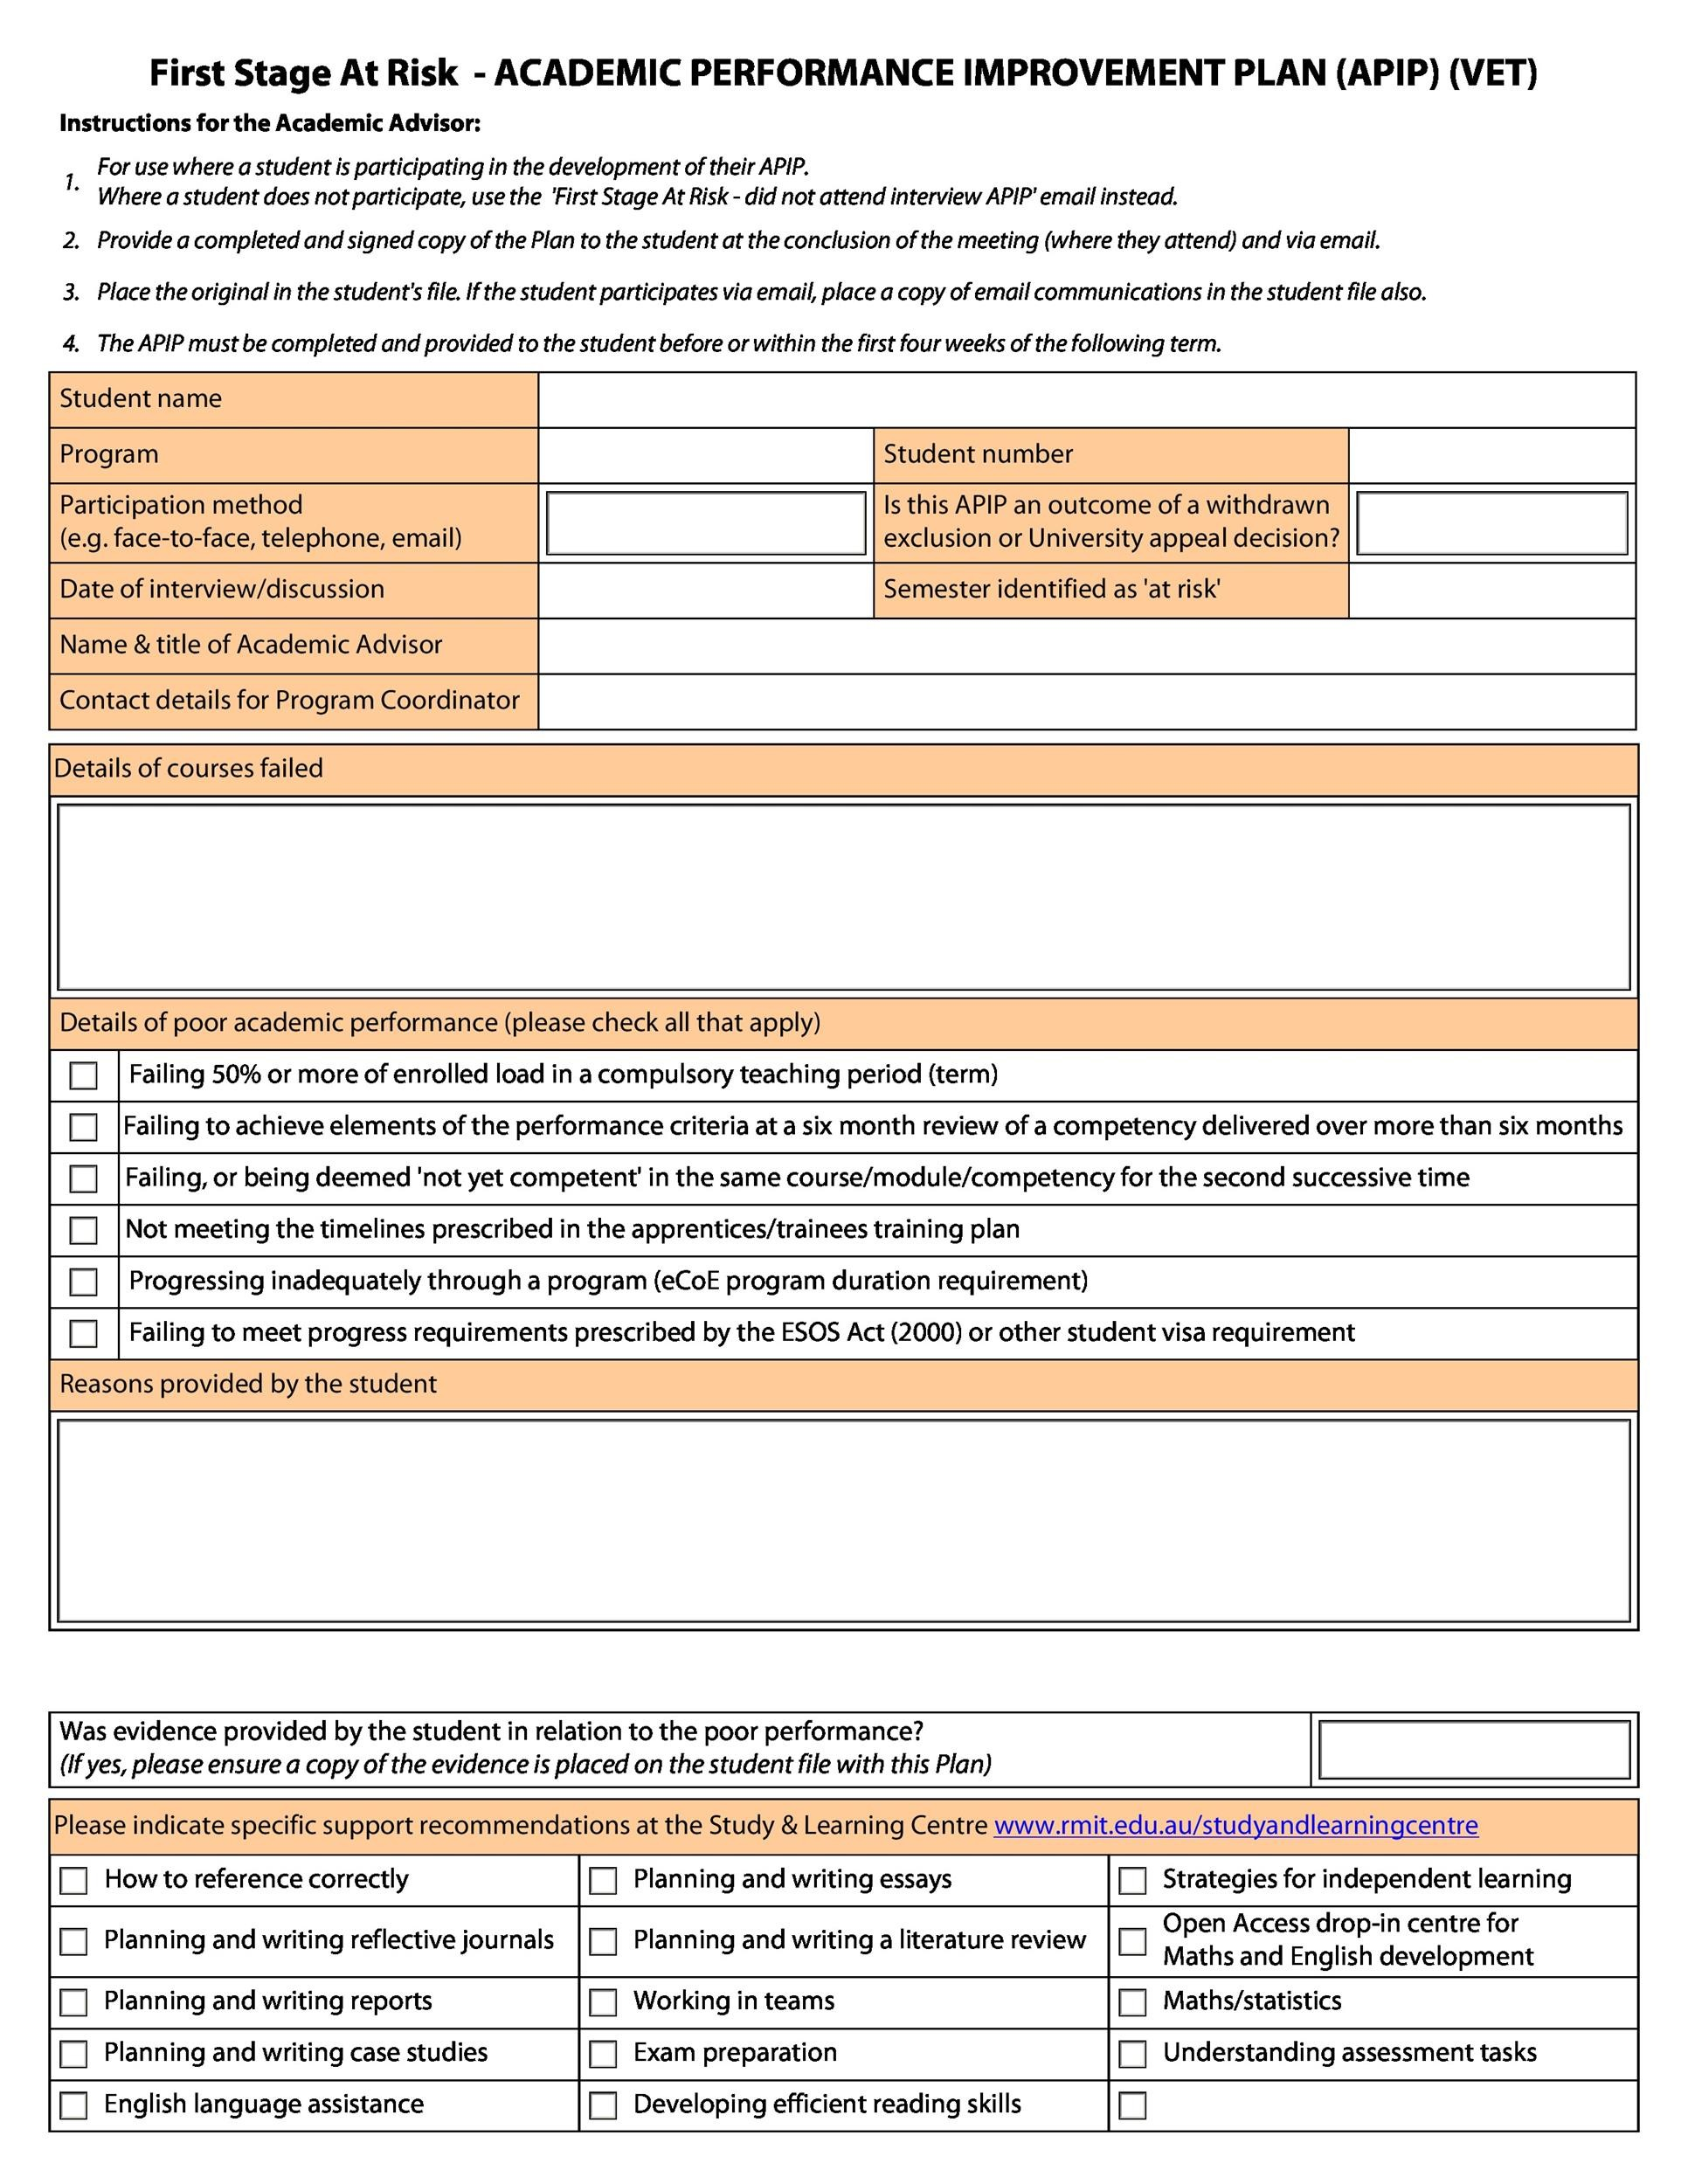 Personal Action Plan Template funeral template download – Performance Improvement Template